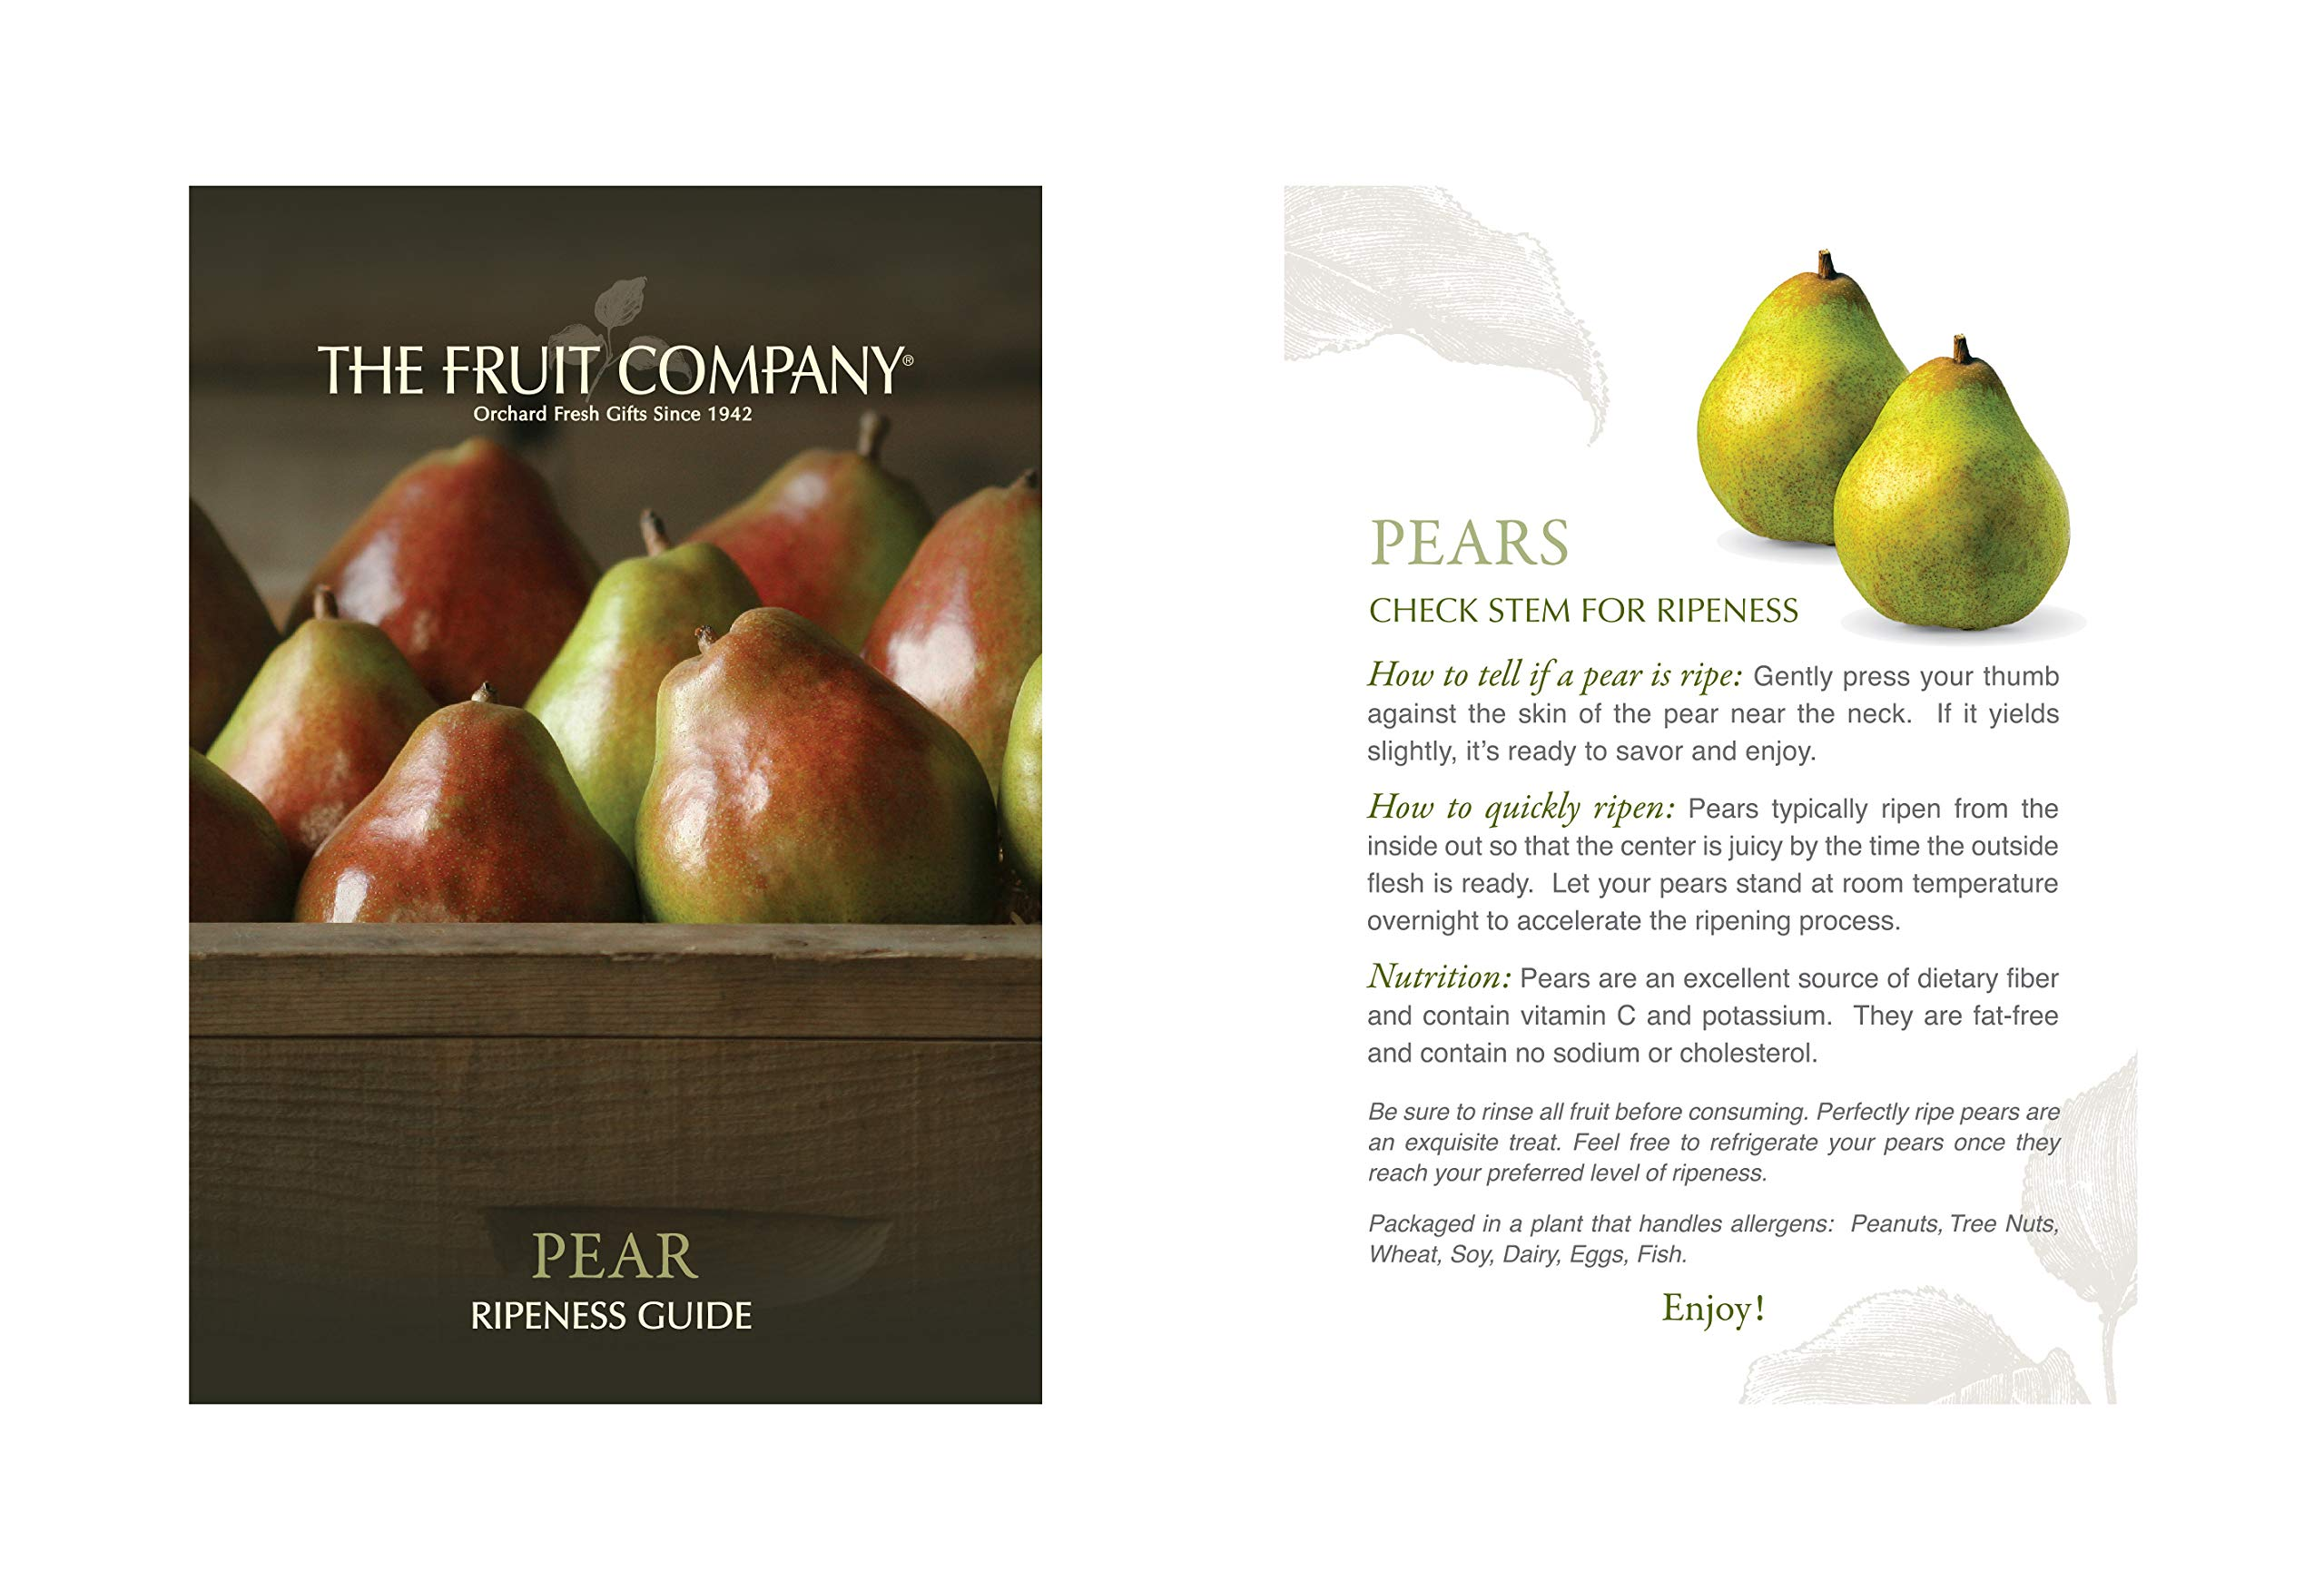 The Fruit Company - Oregon's Finest Summer Gift Box -9 Pieces Premium Fresh Fruit - Fuji Apples and Pears Chocolate Ganache Brownie & Fruit Inspired Taffy Comes in a Bamboo Print Box by The Fruit Company (Image #2)